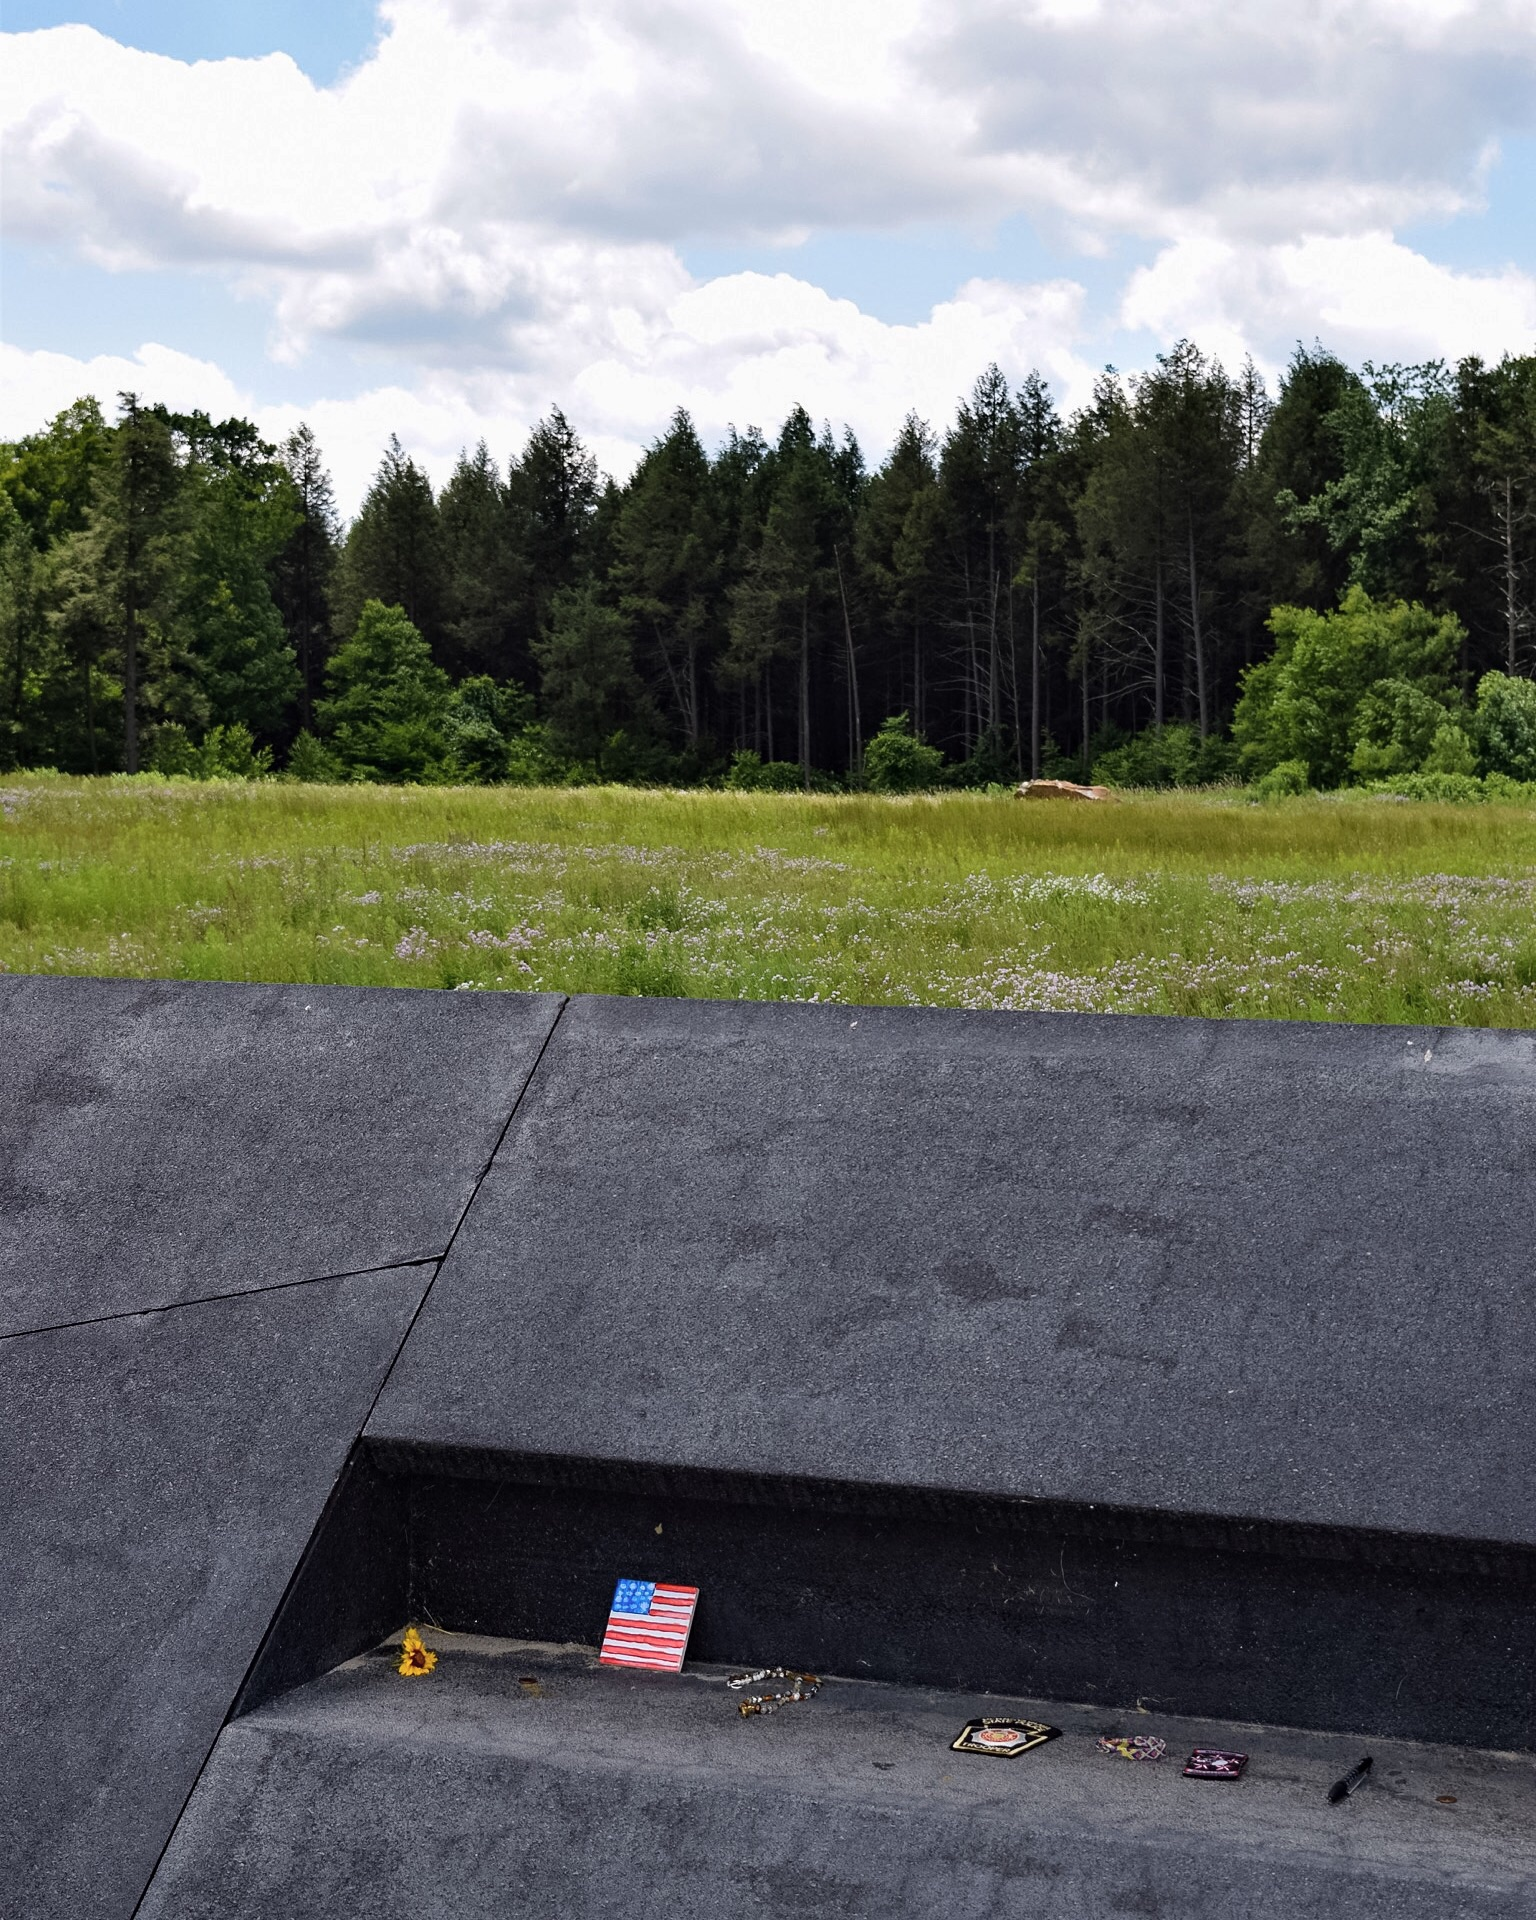 Shenksville, PA. The boulder marks the impact site of Flight 93.